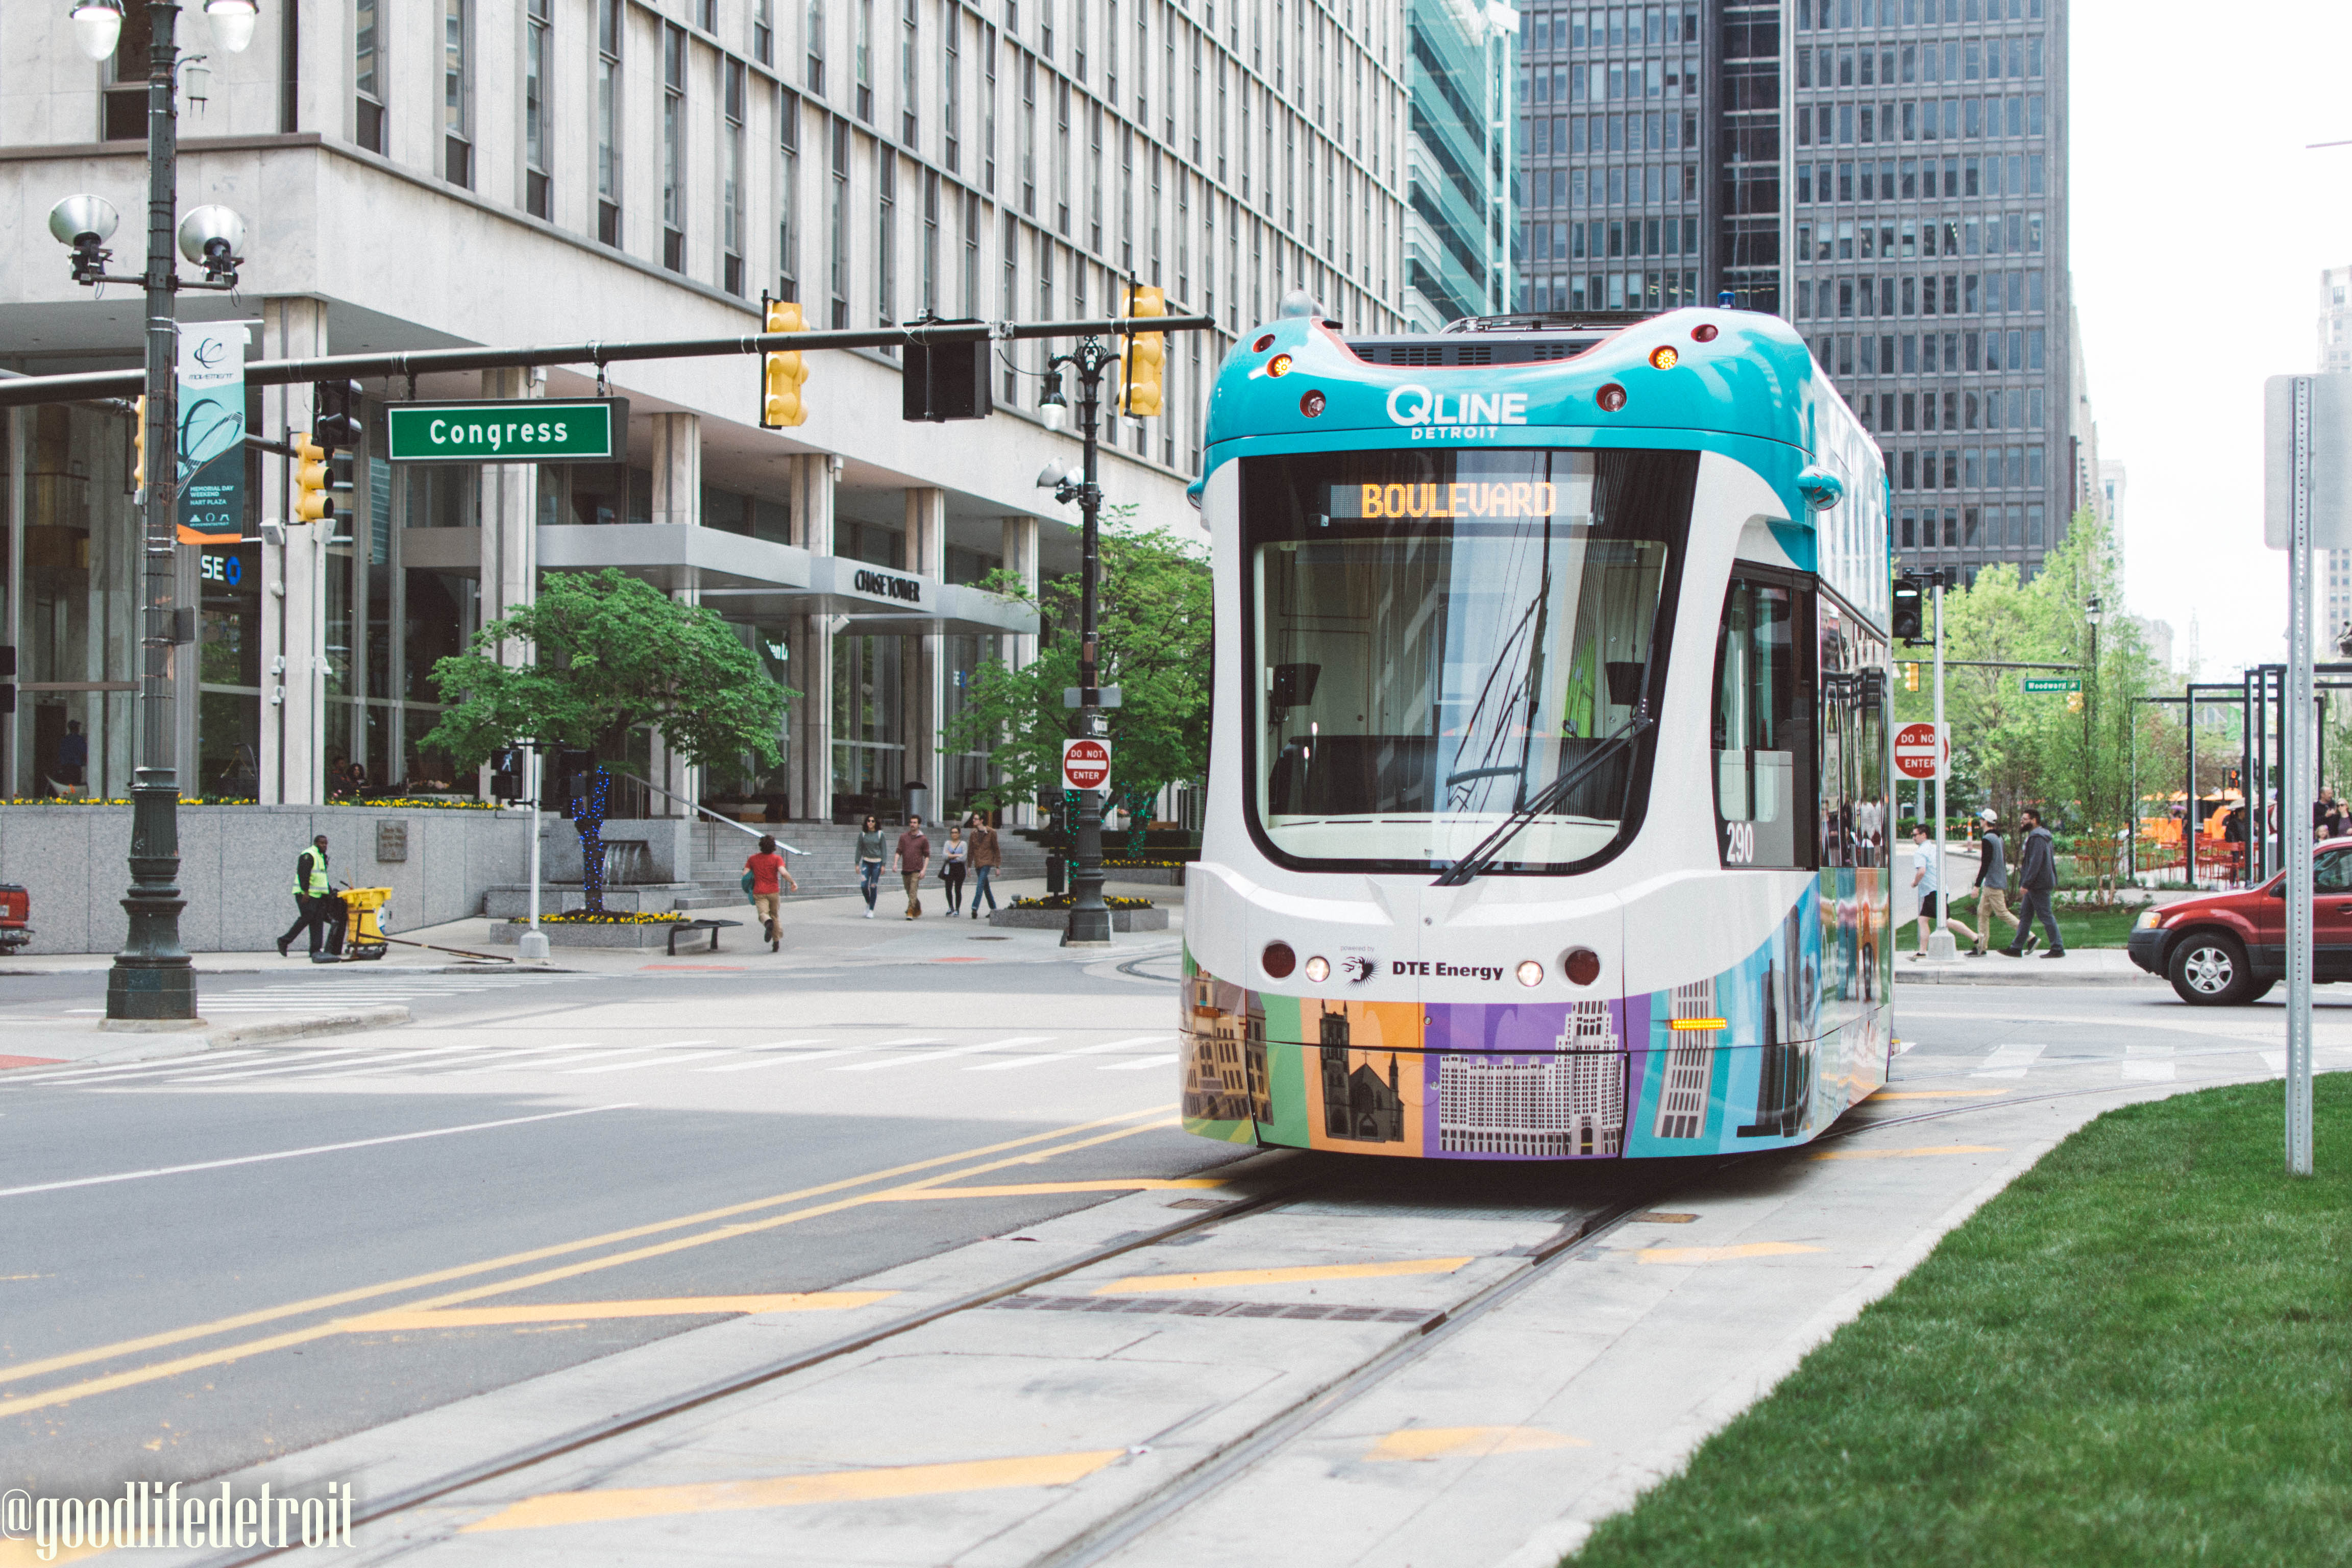 Detroit's QLINE: What We Love About It